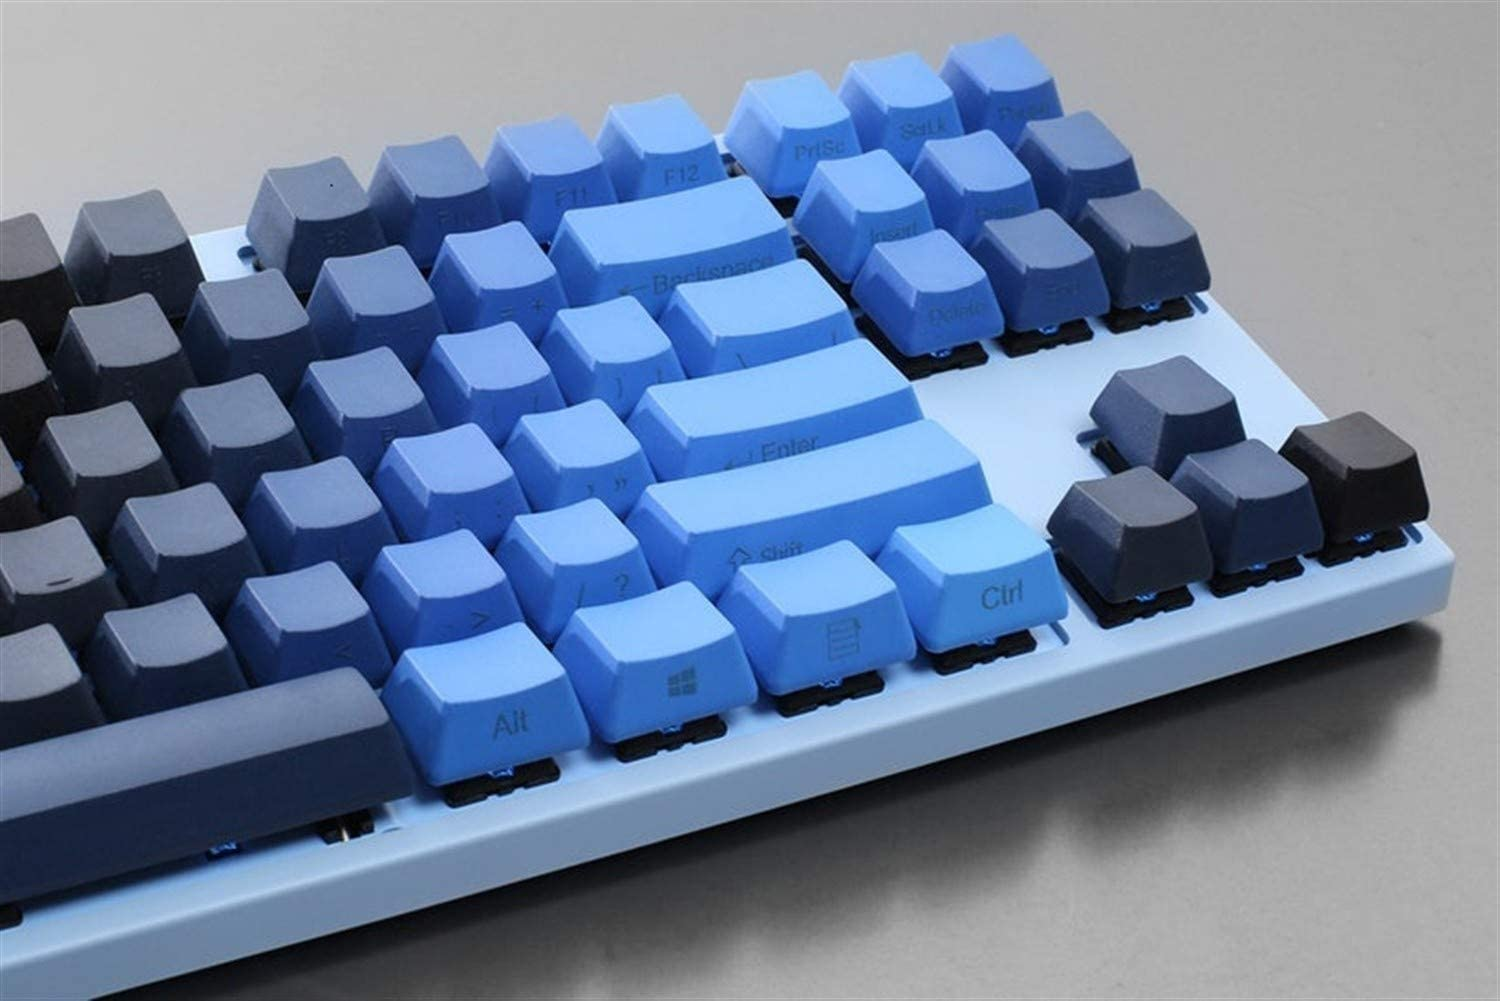 Color : Side Engraved Man-hj Keyboard keycaps PBT DYE-SUBBED 104 KEYCAPS Set Profile Thick PBT Compatible with Switches and Related Clones